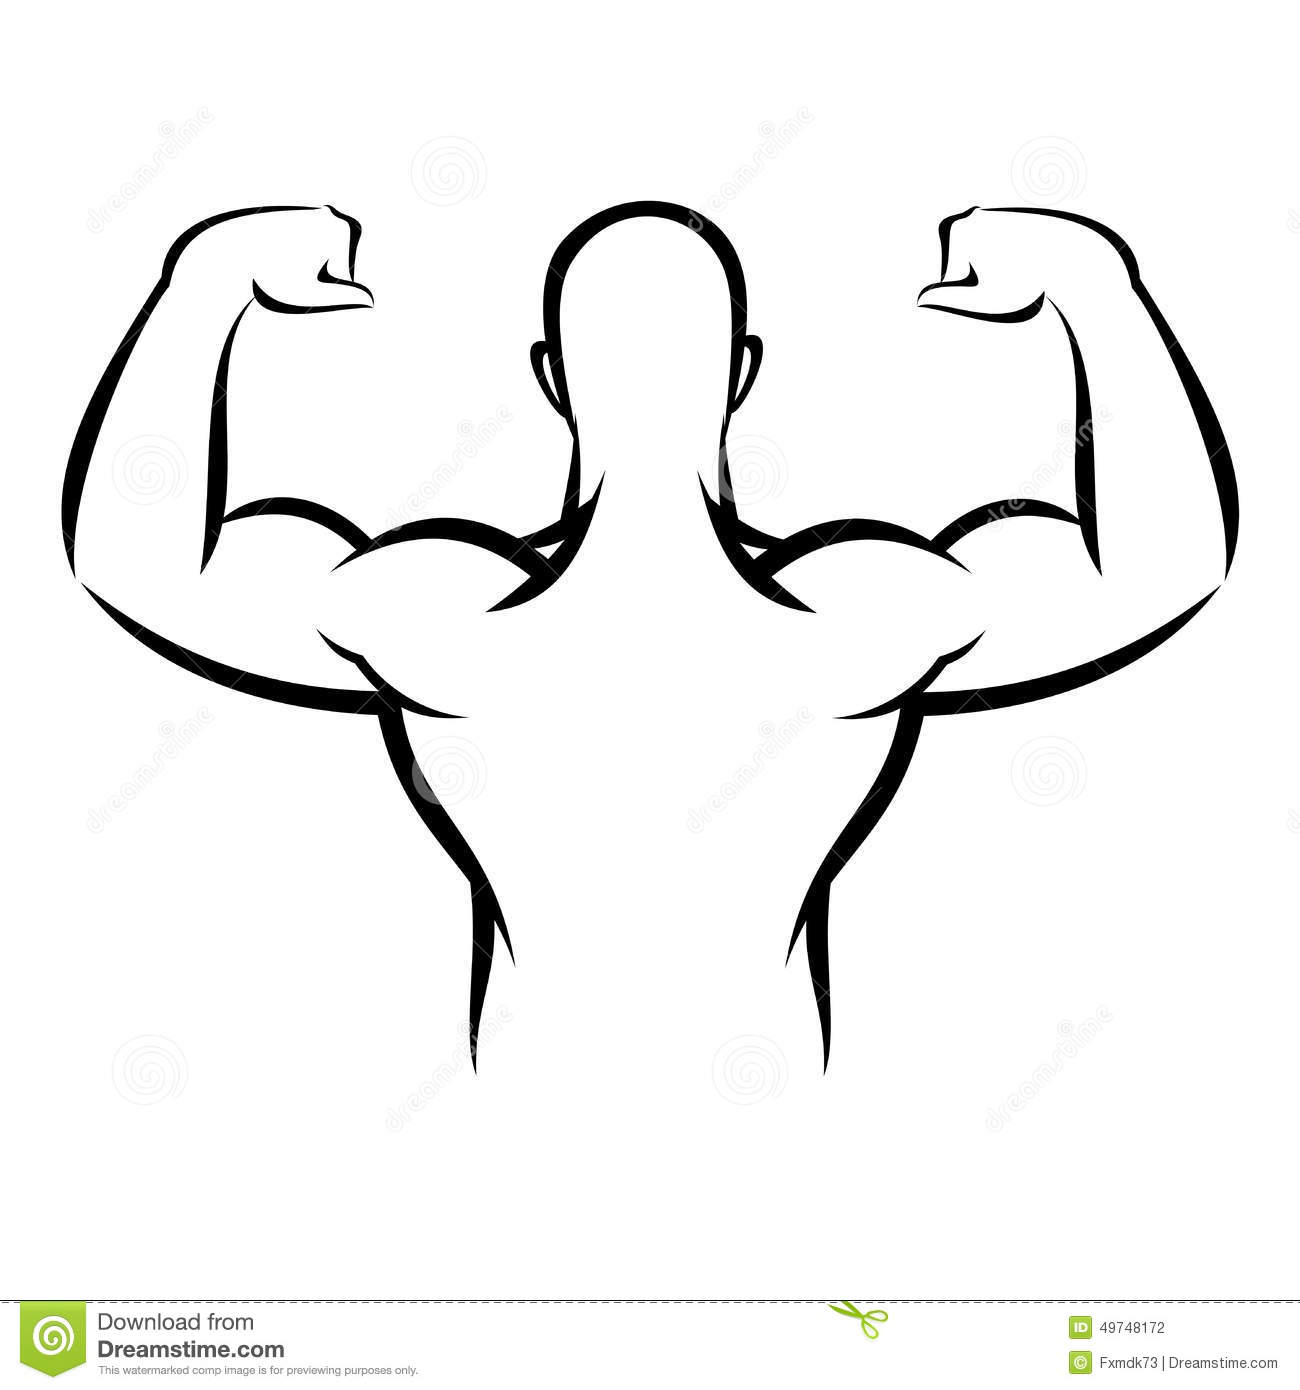 spine map with Stock Illustration Muscle Man Vector Illustration White Background Image49748172 on Stock Photography Female Anatomy D Rendered Illustration Image30724402 also Bmd also Stock Illustration Muscle Man Vector Illustration White Background Image49748172 also 20590 Thonner likewise ARTERIES 20OF 20THE 20BODY.